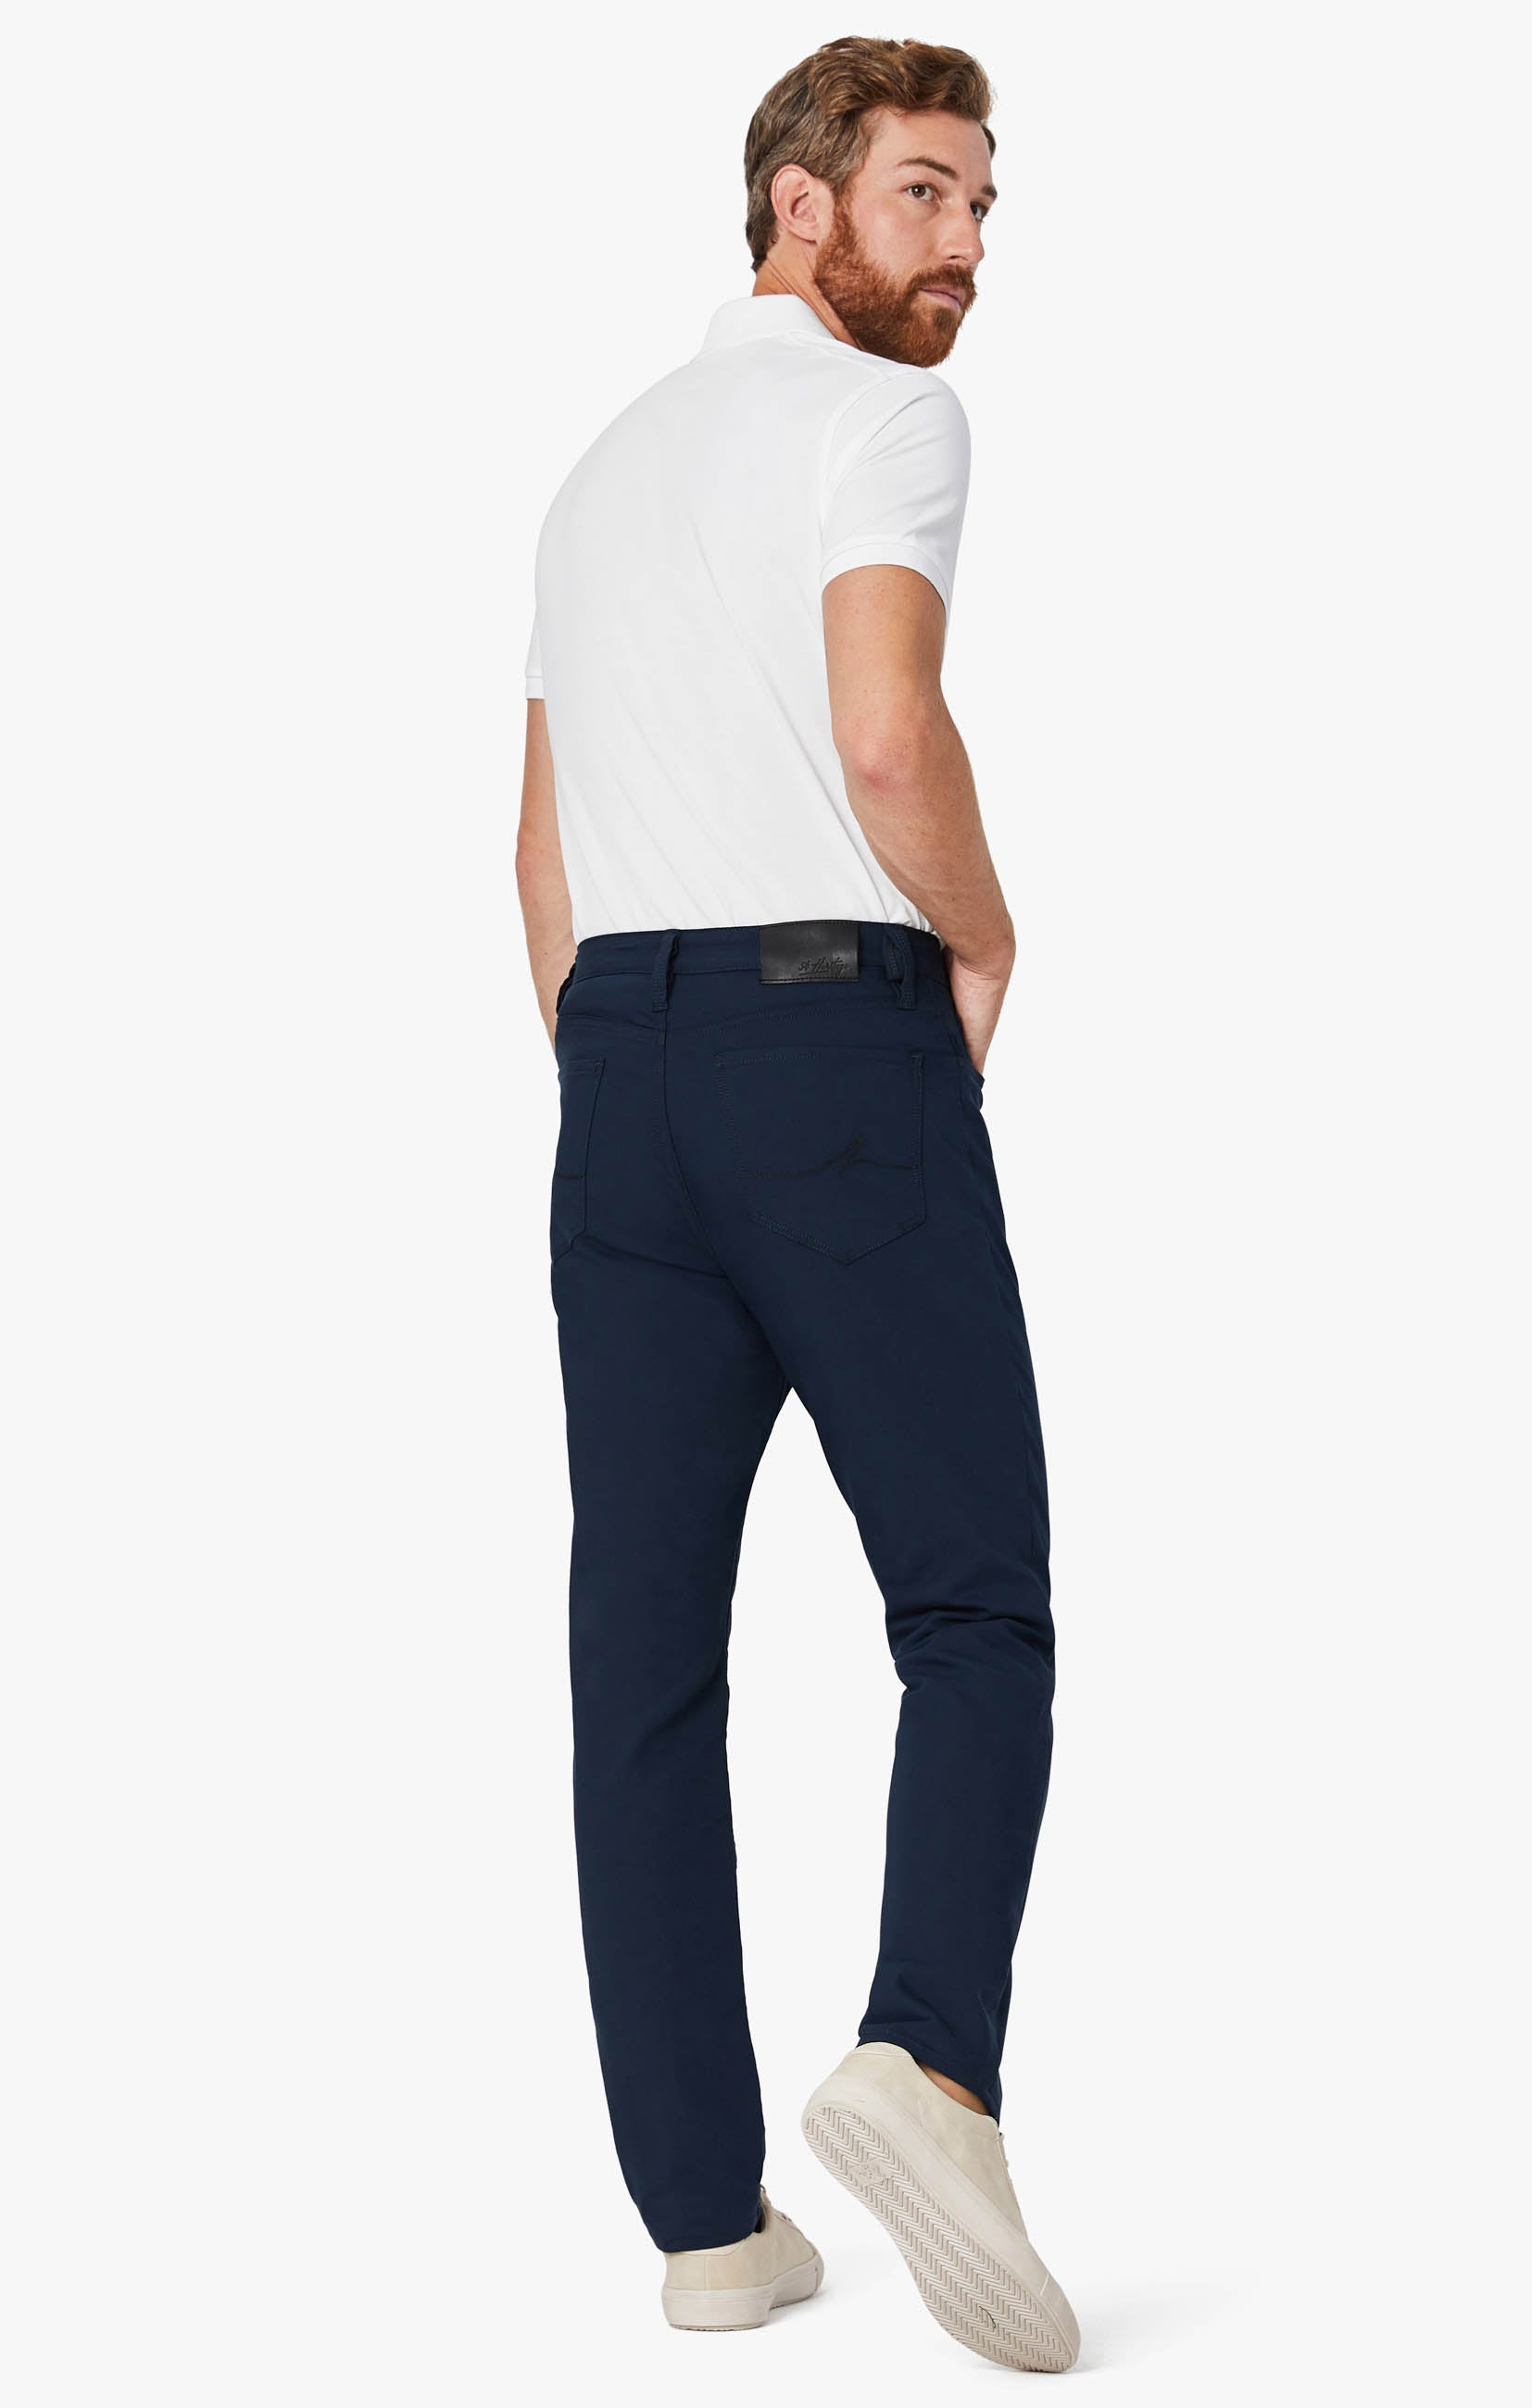 Charisma Classic Fit Pants In Navy Commuter Image 4